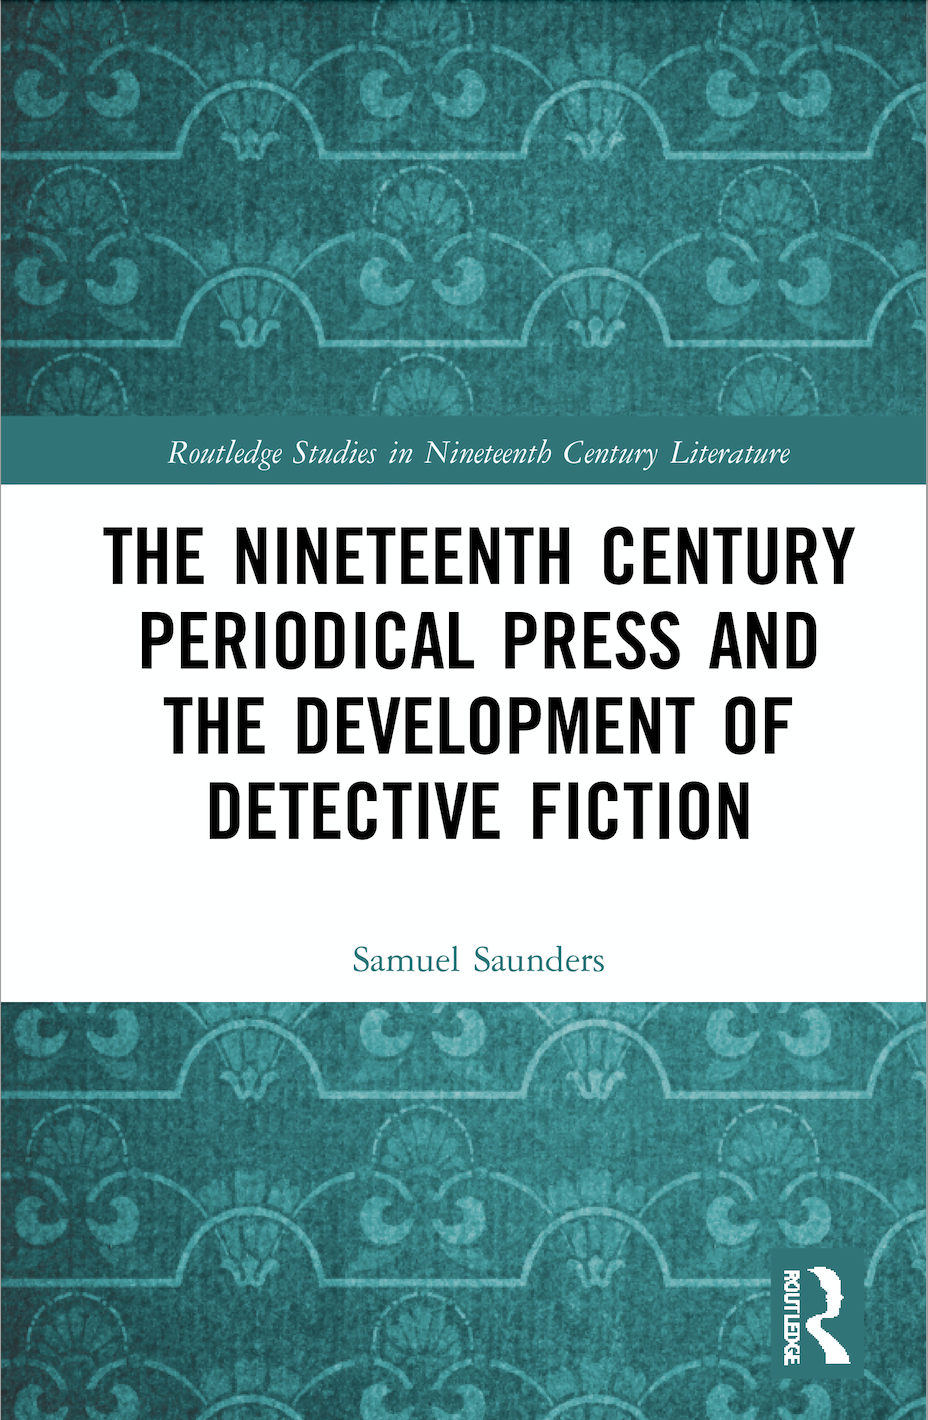 S. Saunders. The Nineteenth Century Periodical Press and the Development of Detective Fiction